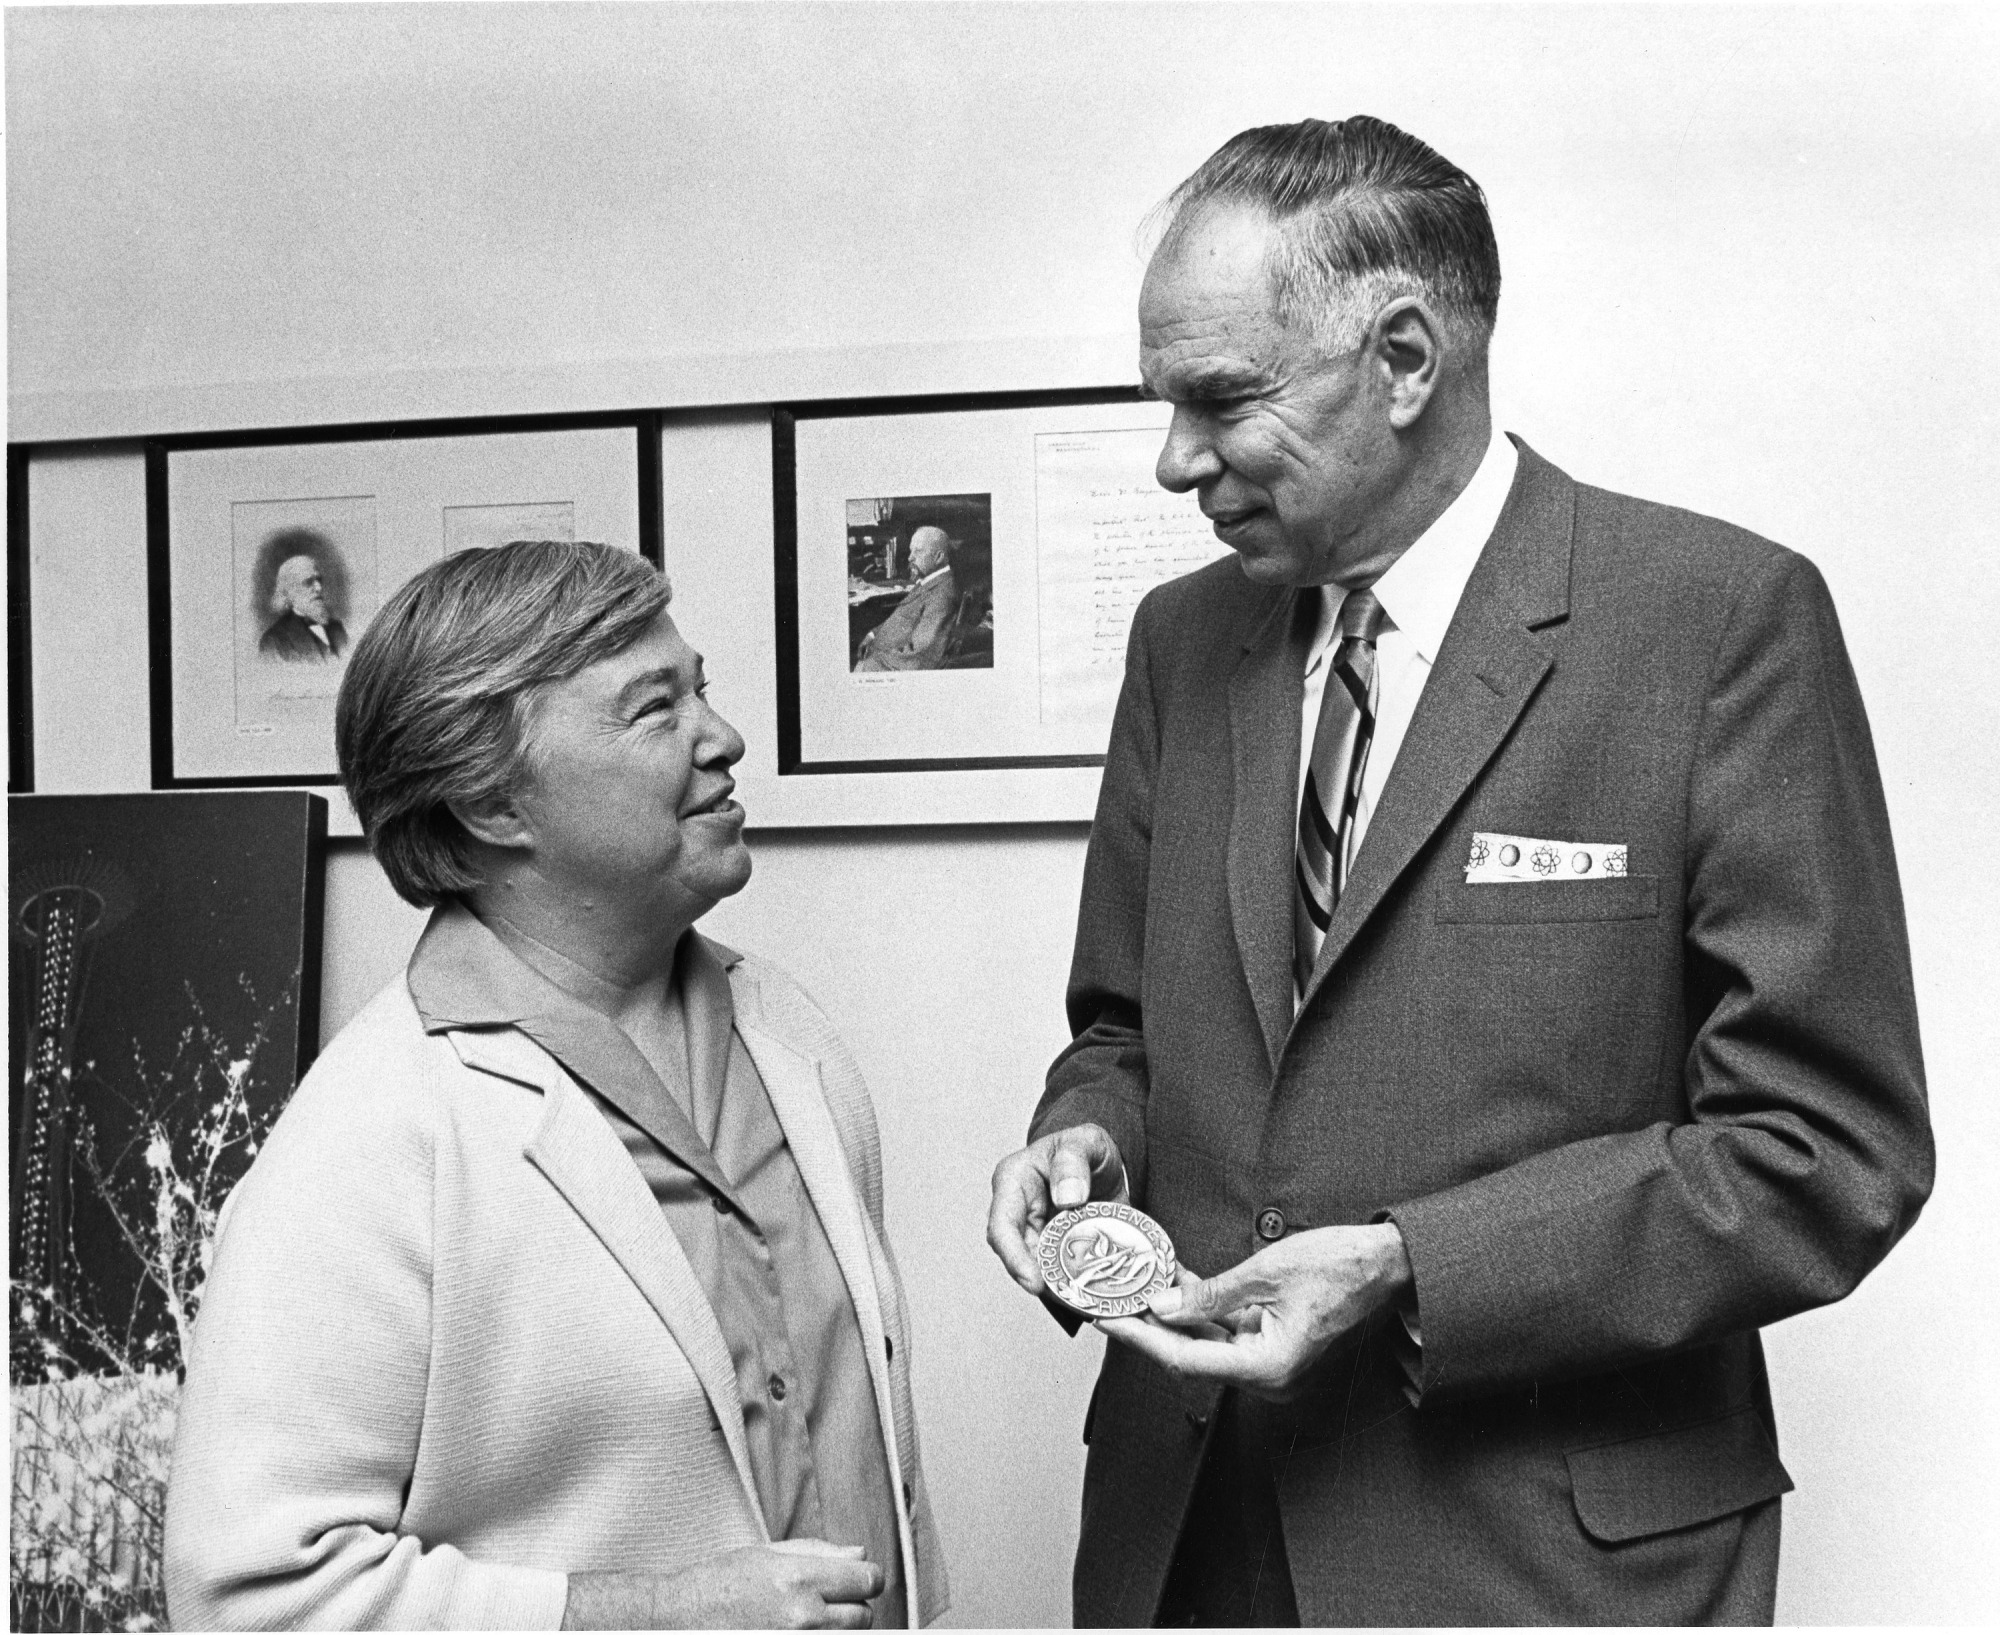 left to right: Dixy Lee Ray (1914-1994) and Glenn Theodore Seaborg (1912-1999), 1968, Smithsonian Institution Archives, SIA Acc. 90-105 [SIA2009-3053].